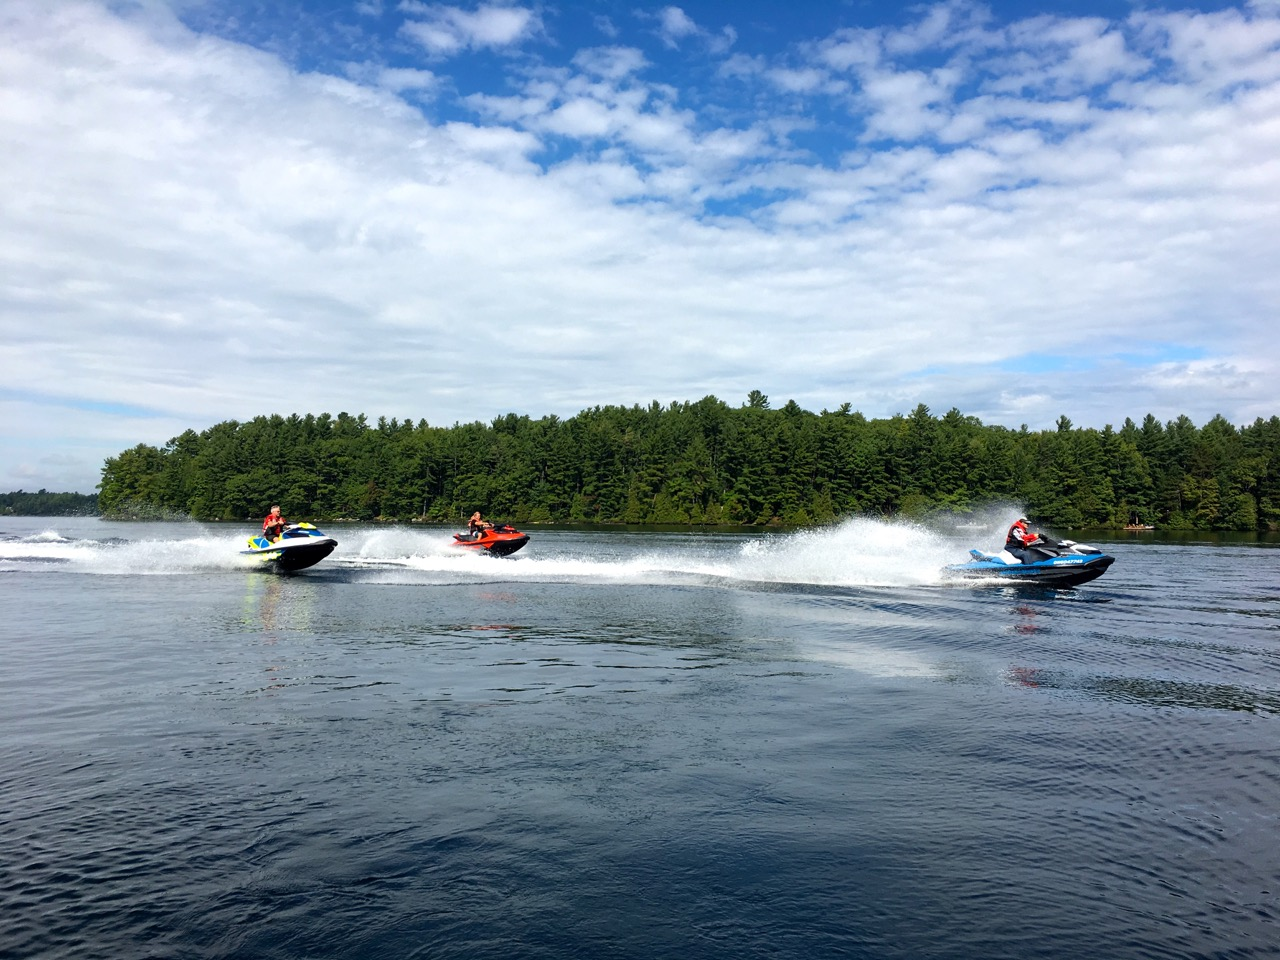 Cruising on calm Lake Muskoka waters during Muskoka fall Sea Doo tour